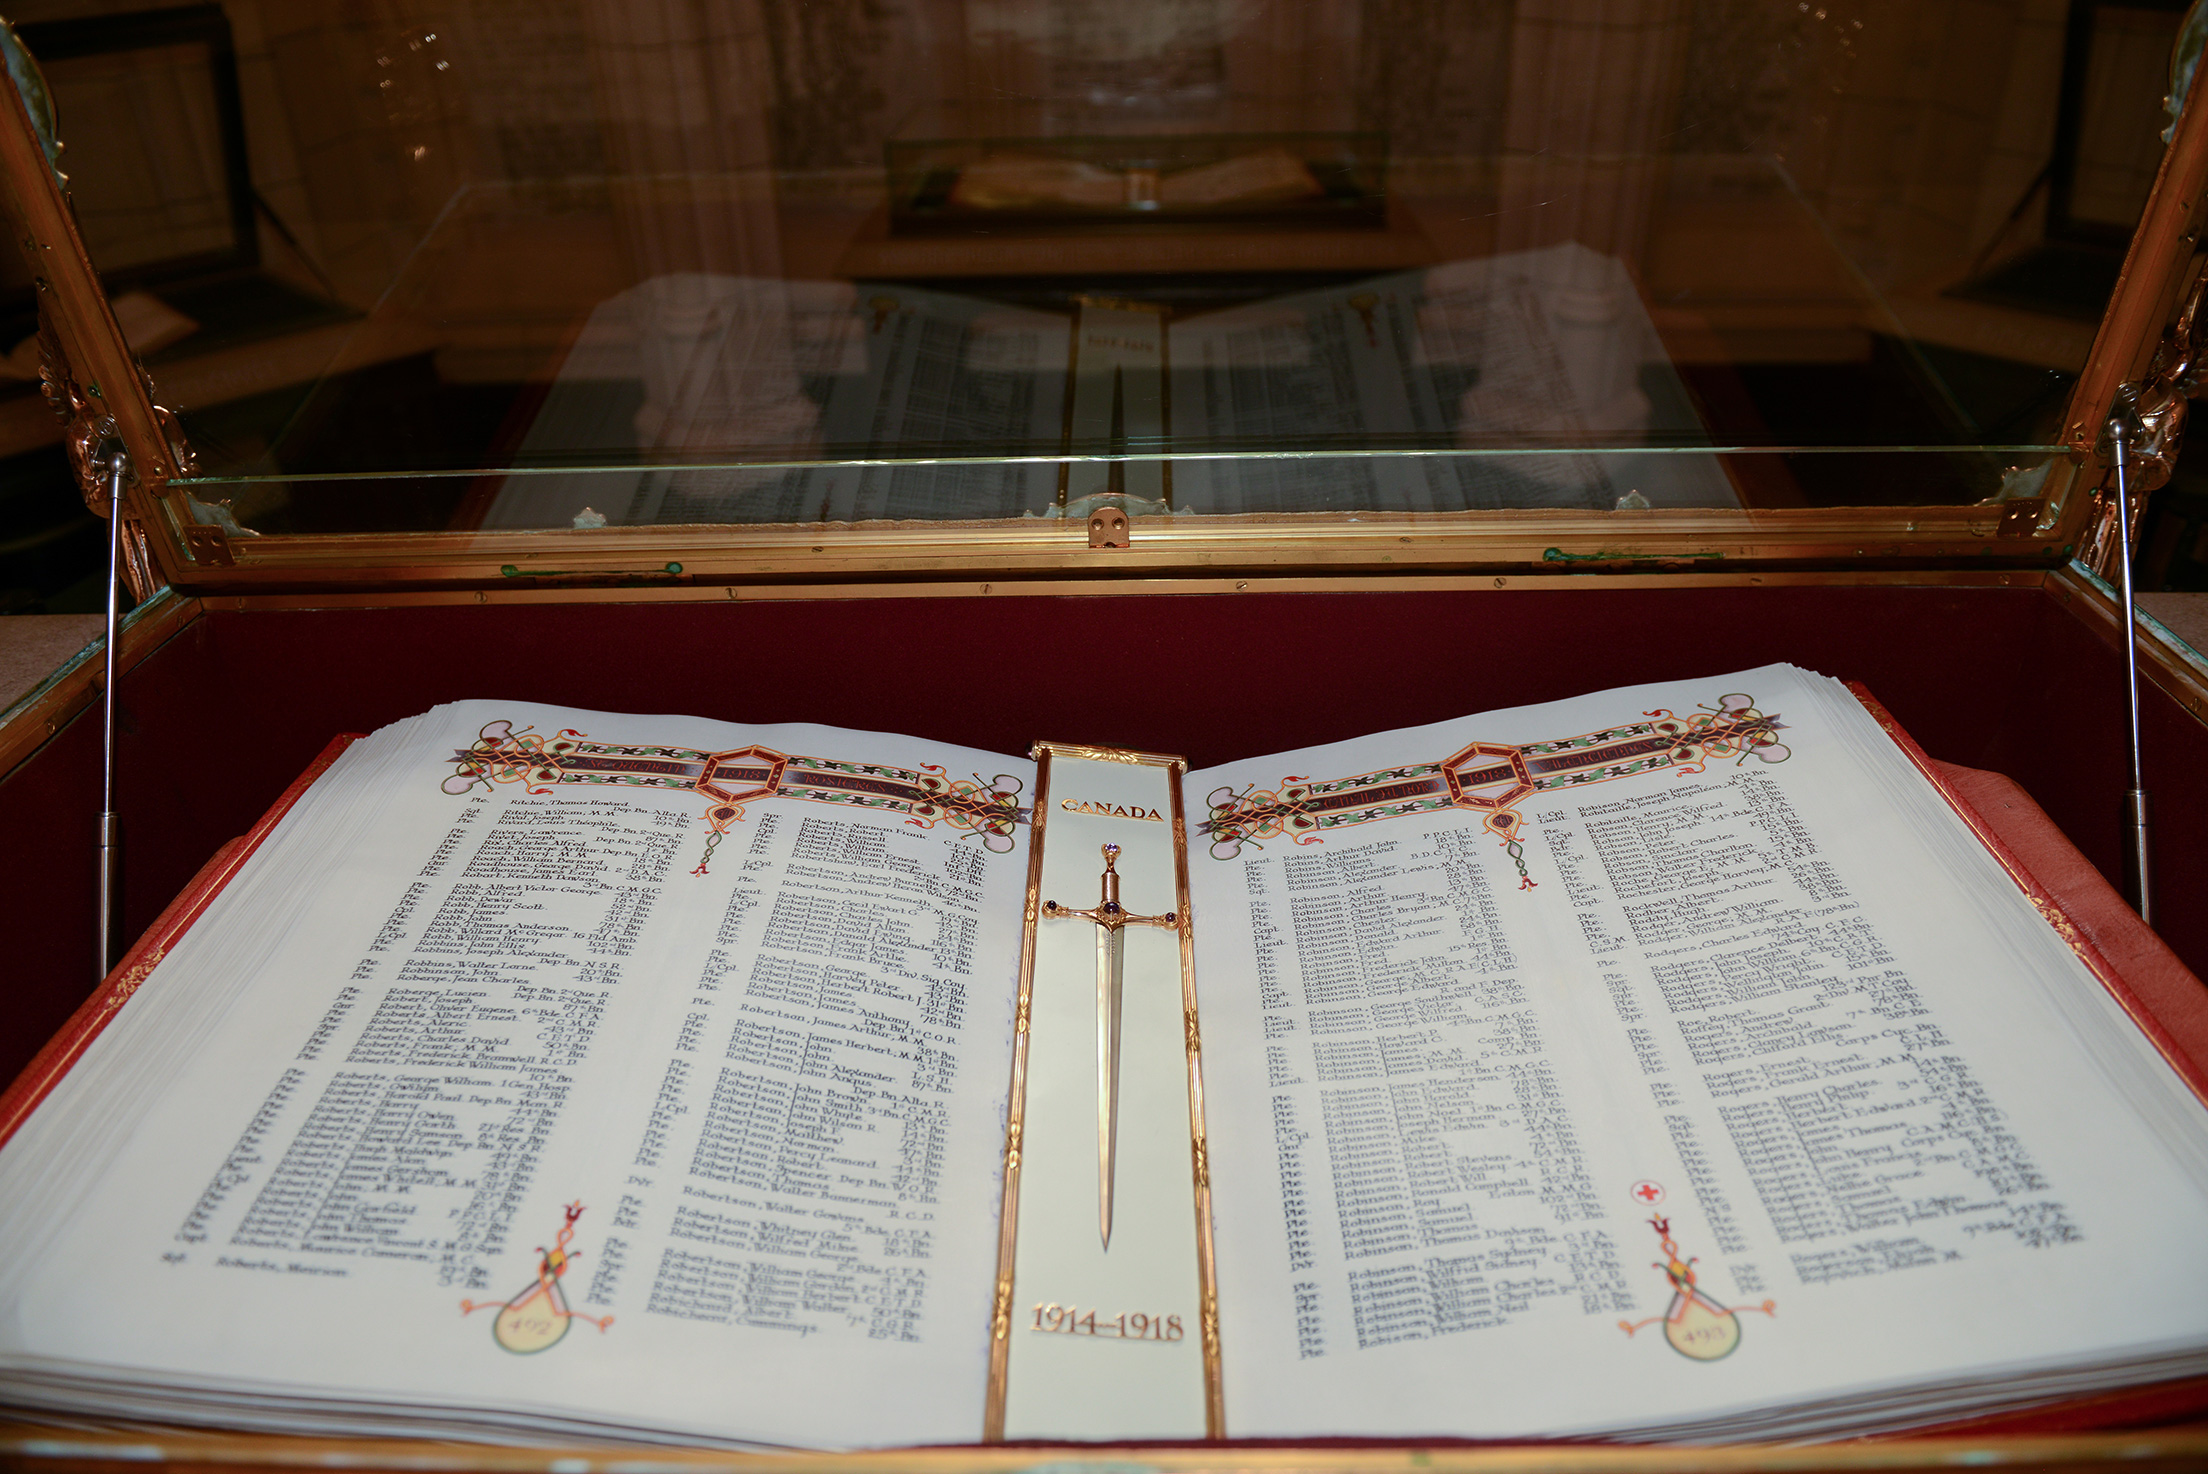 The First World War Book of Remembrance in its display case in the Memorial Chamber of the Peace Tower in Ottawa, Ontario on October 19, 2016. ©2016 DND/MDN Canada.